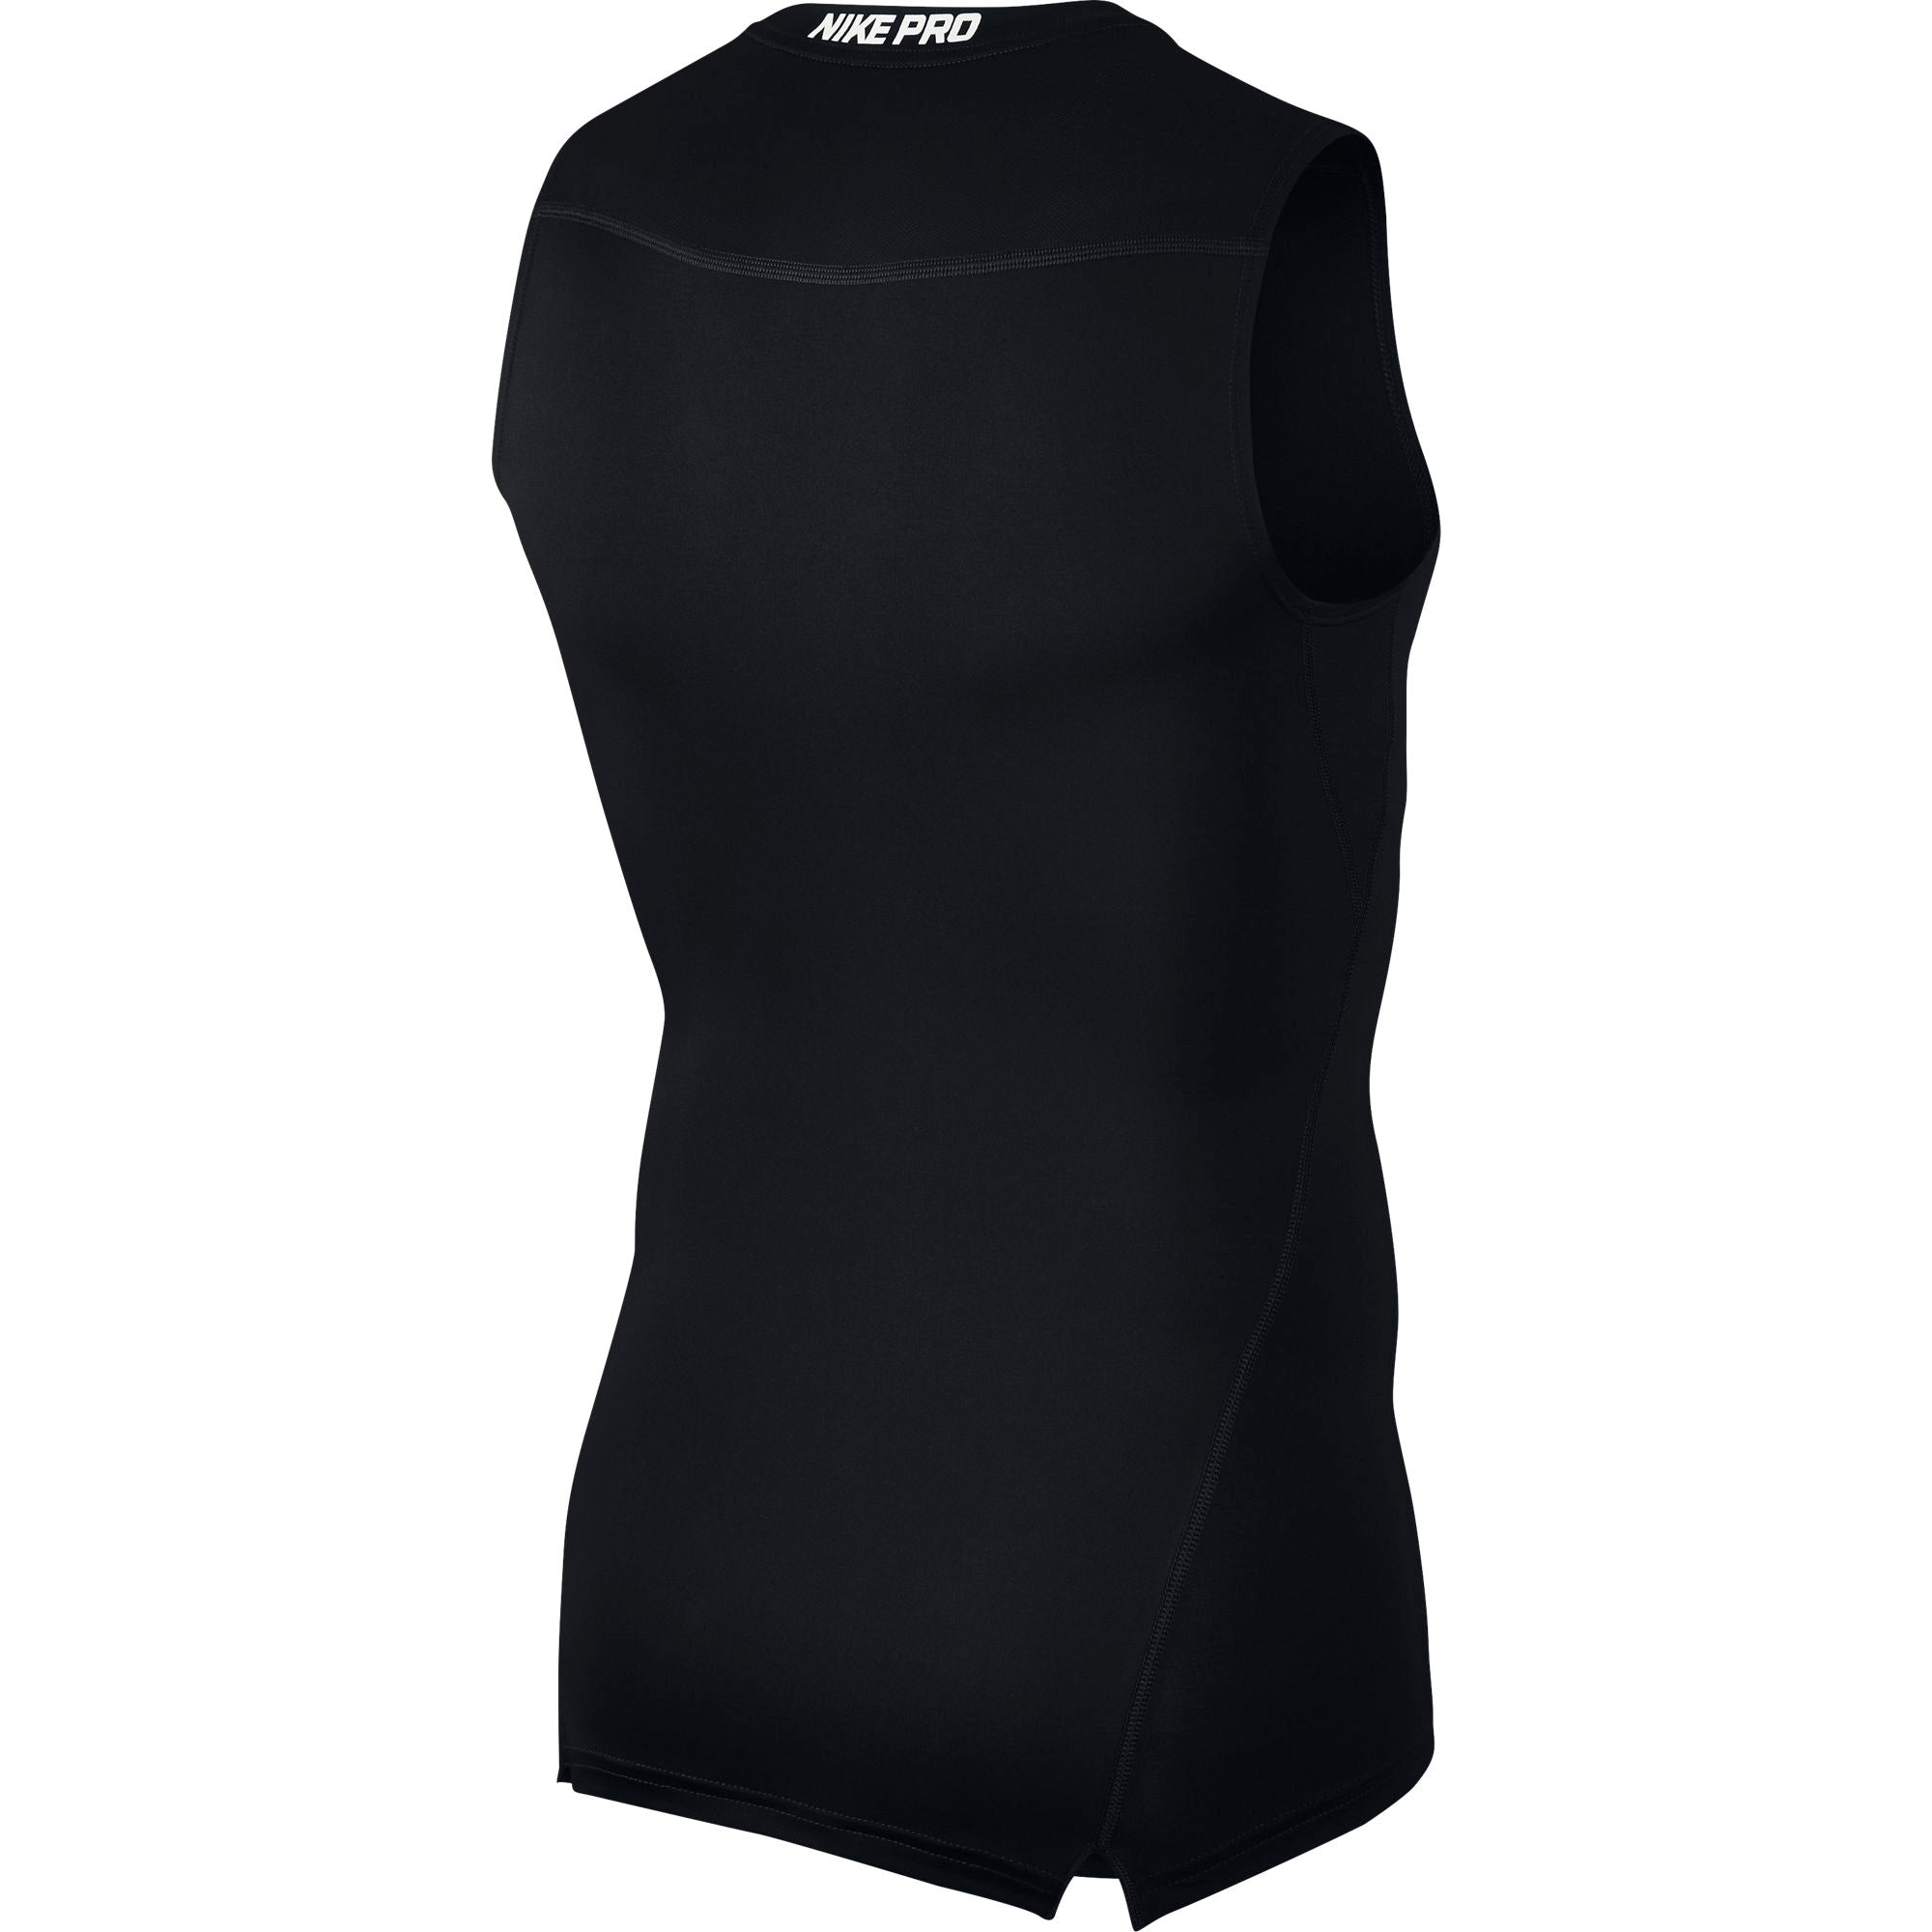 Nike Pro Base Layer Top - Black/White